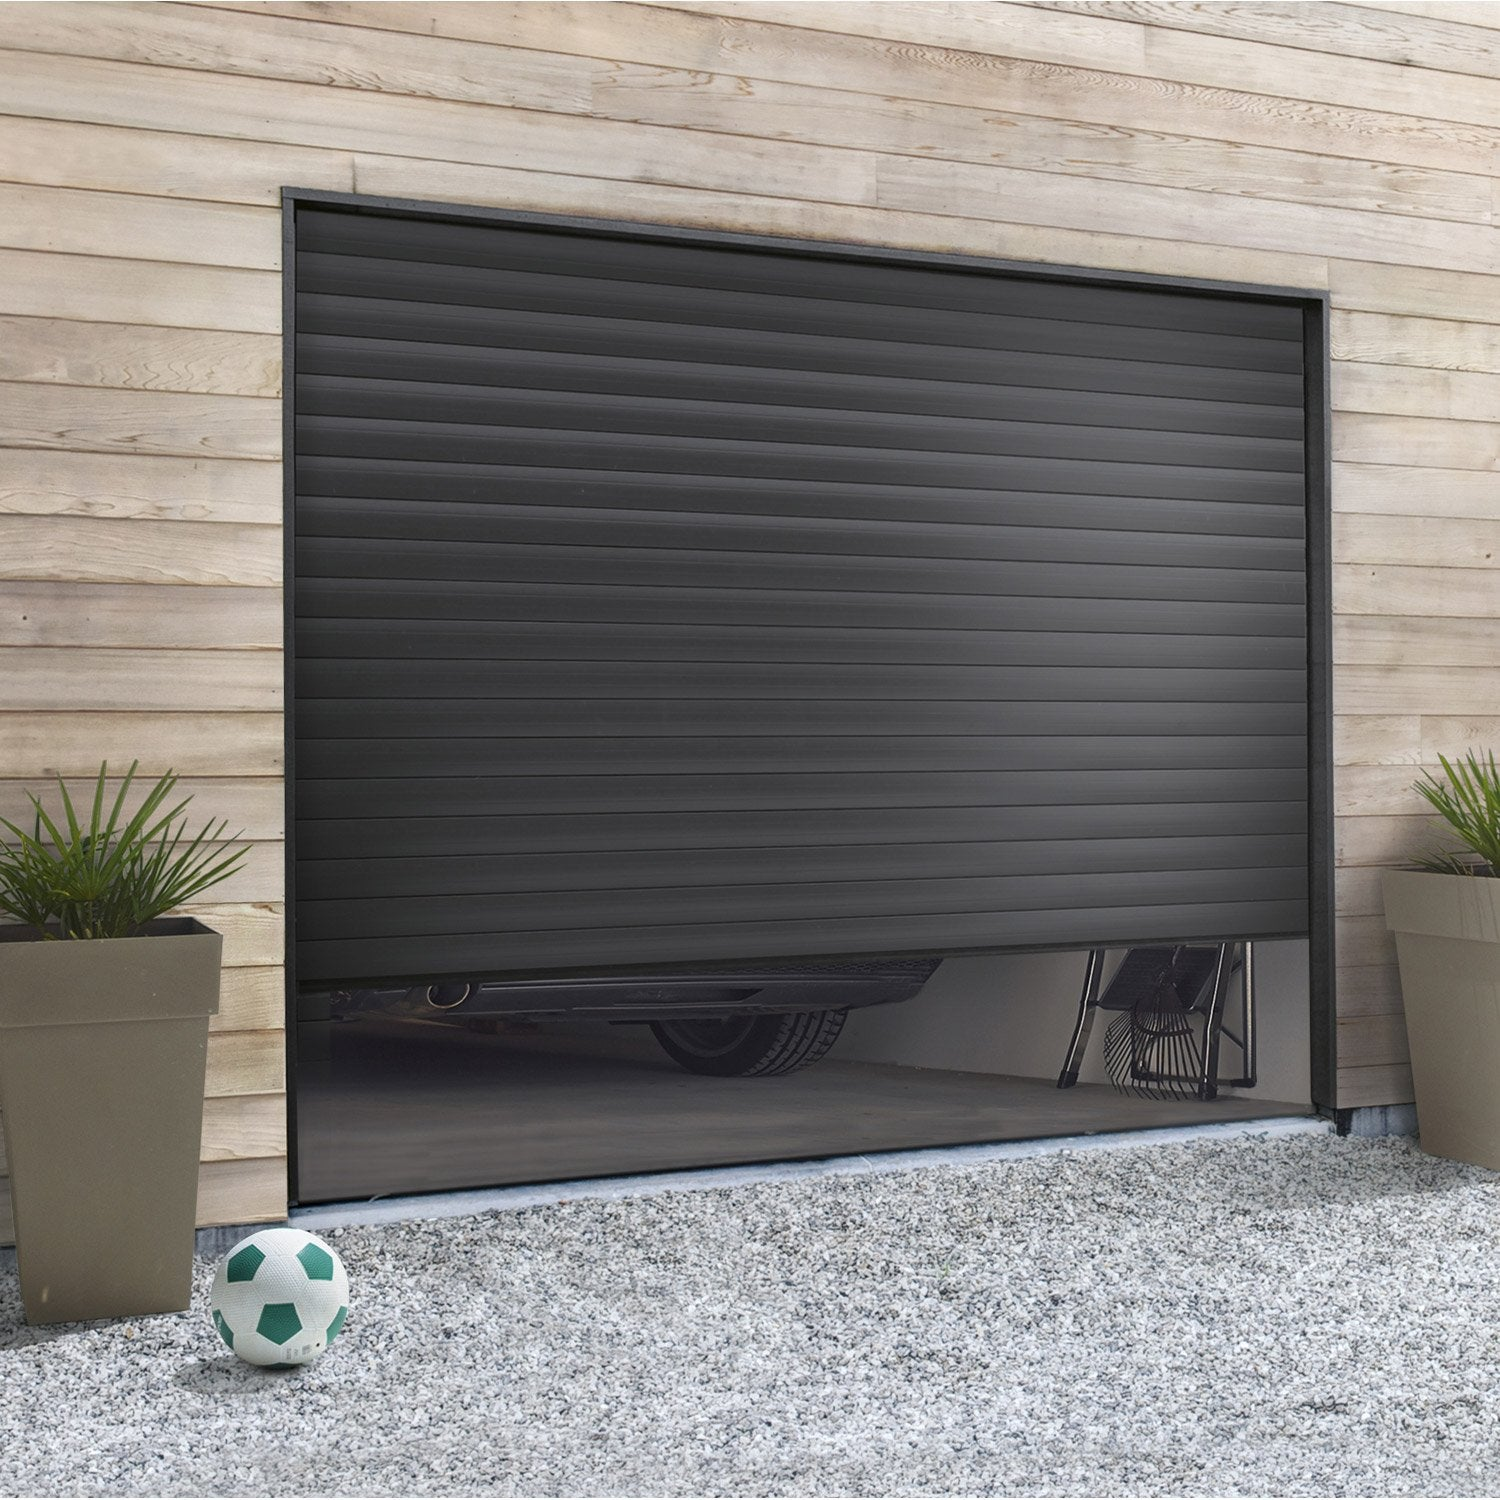 Pose d 39 une porte de garage enroulable leroy merlin - Guide installation porte de garage ...